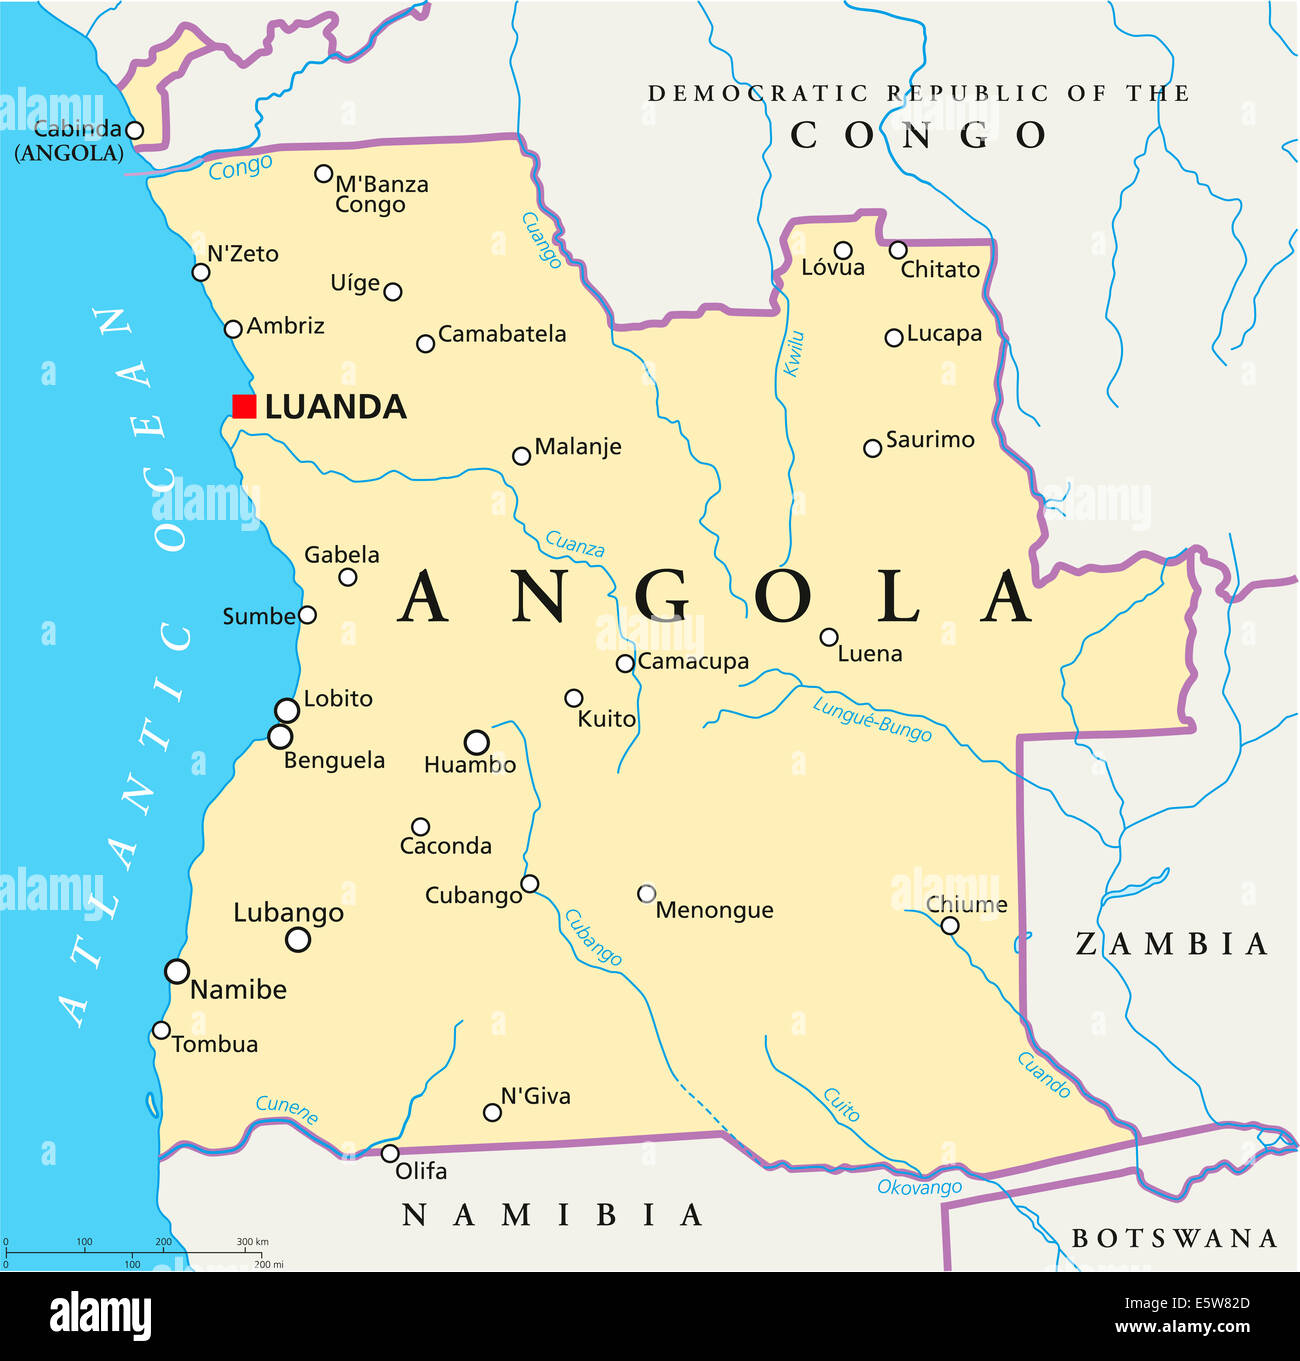 Angola Political Map with capital Luanda, with national borders, most important cities, rivers and lakes with English - Stock Image